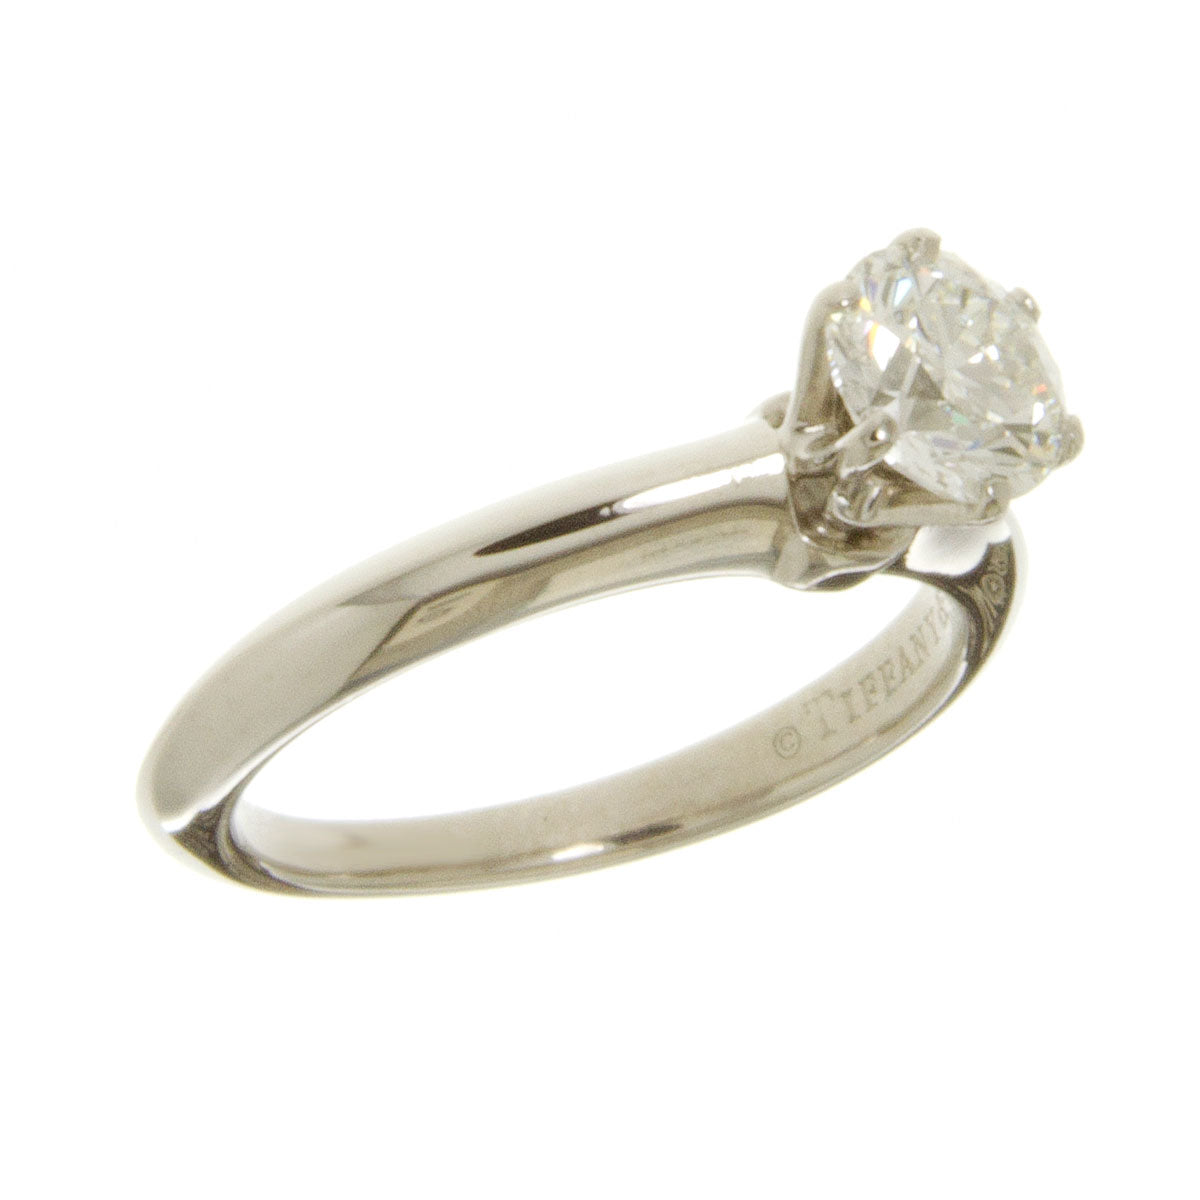 Engagement Rings Chicago: Tiffany & Co. Platinum 0.80ct Solitaire Diamond Engagement